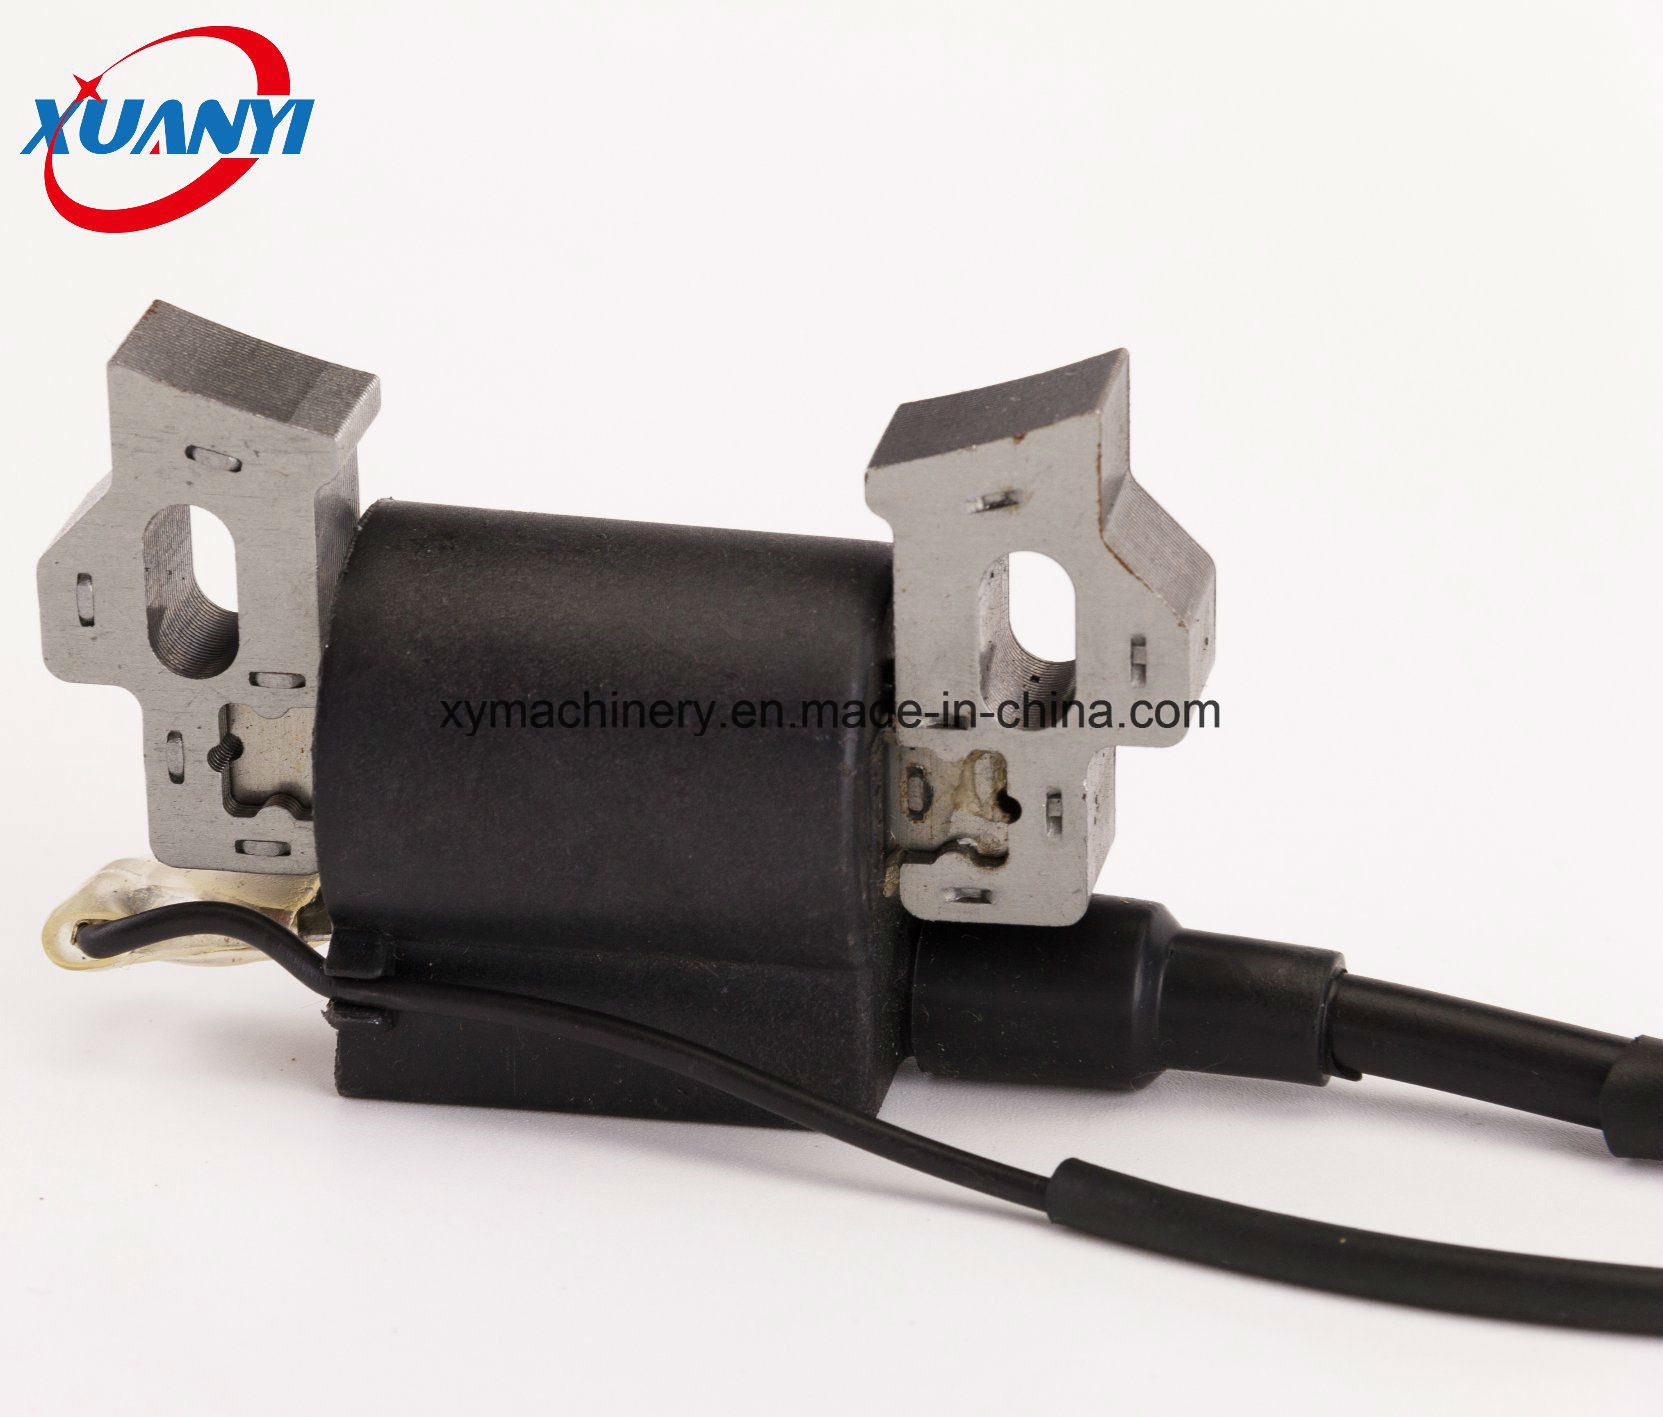 [Hot Item] Spark Plug Ignition Coil, High Pressure Coil for 168f 6 5HP  163cc Gasoline Engine, 2kw Generator Spare Parts